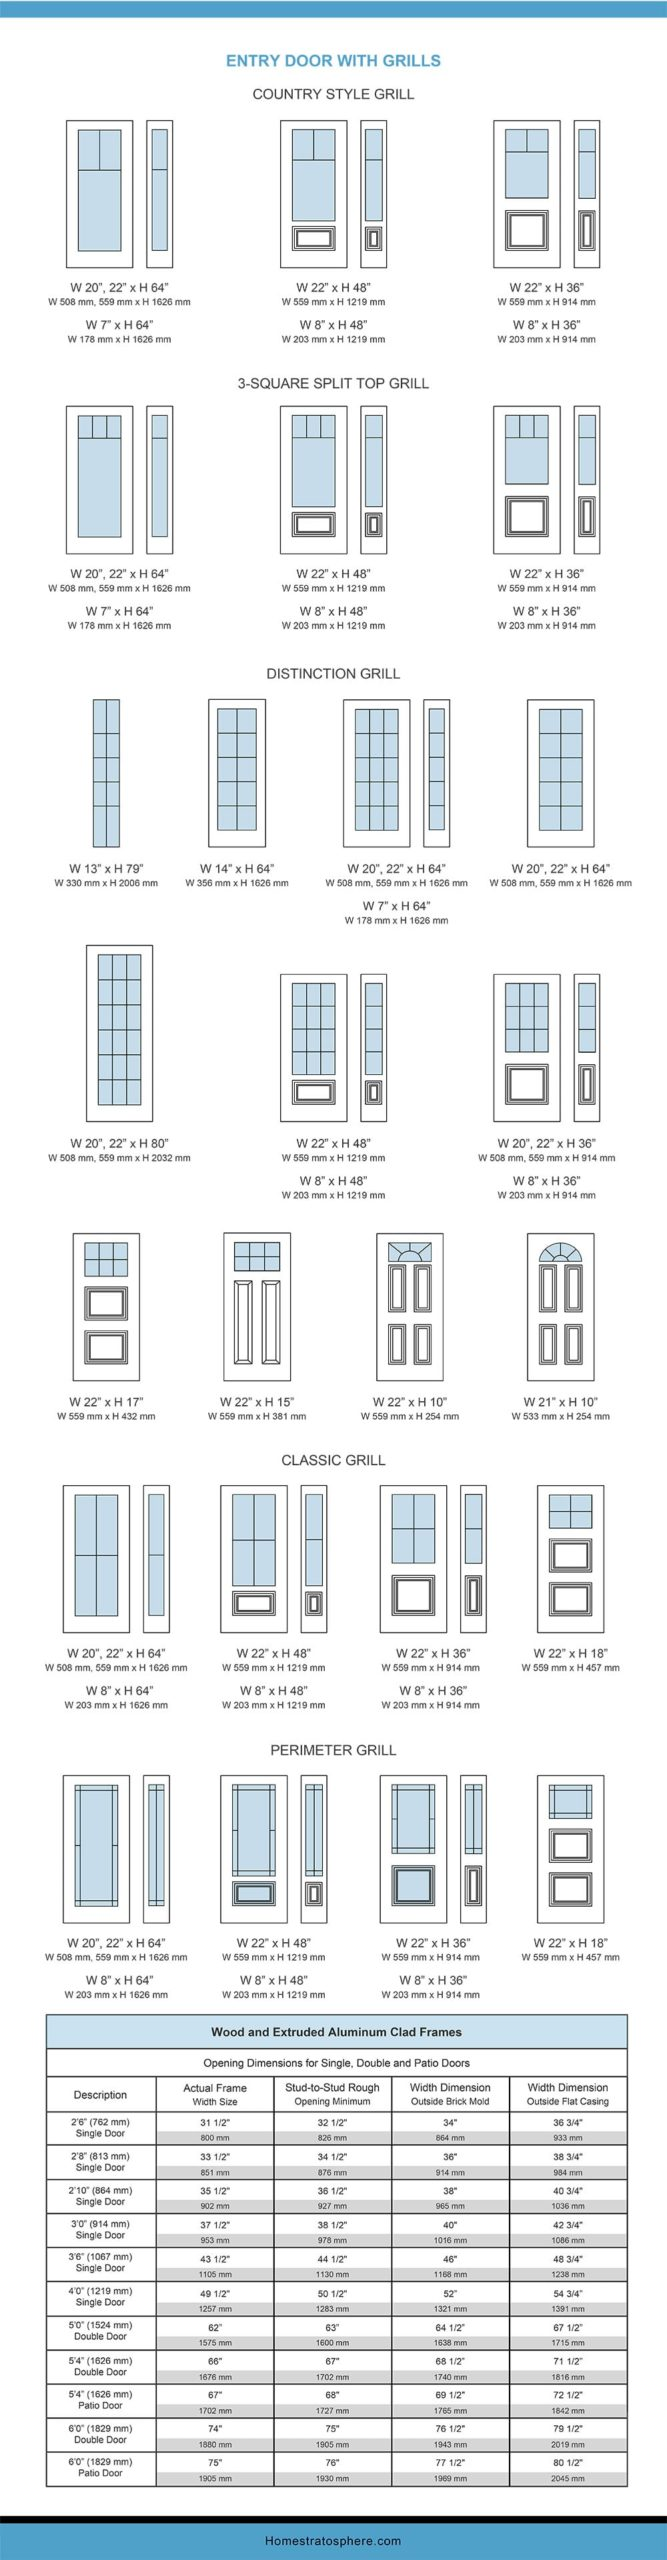 Chart Dimensions of an Entry Door with Grills